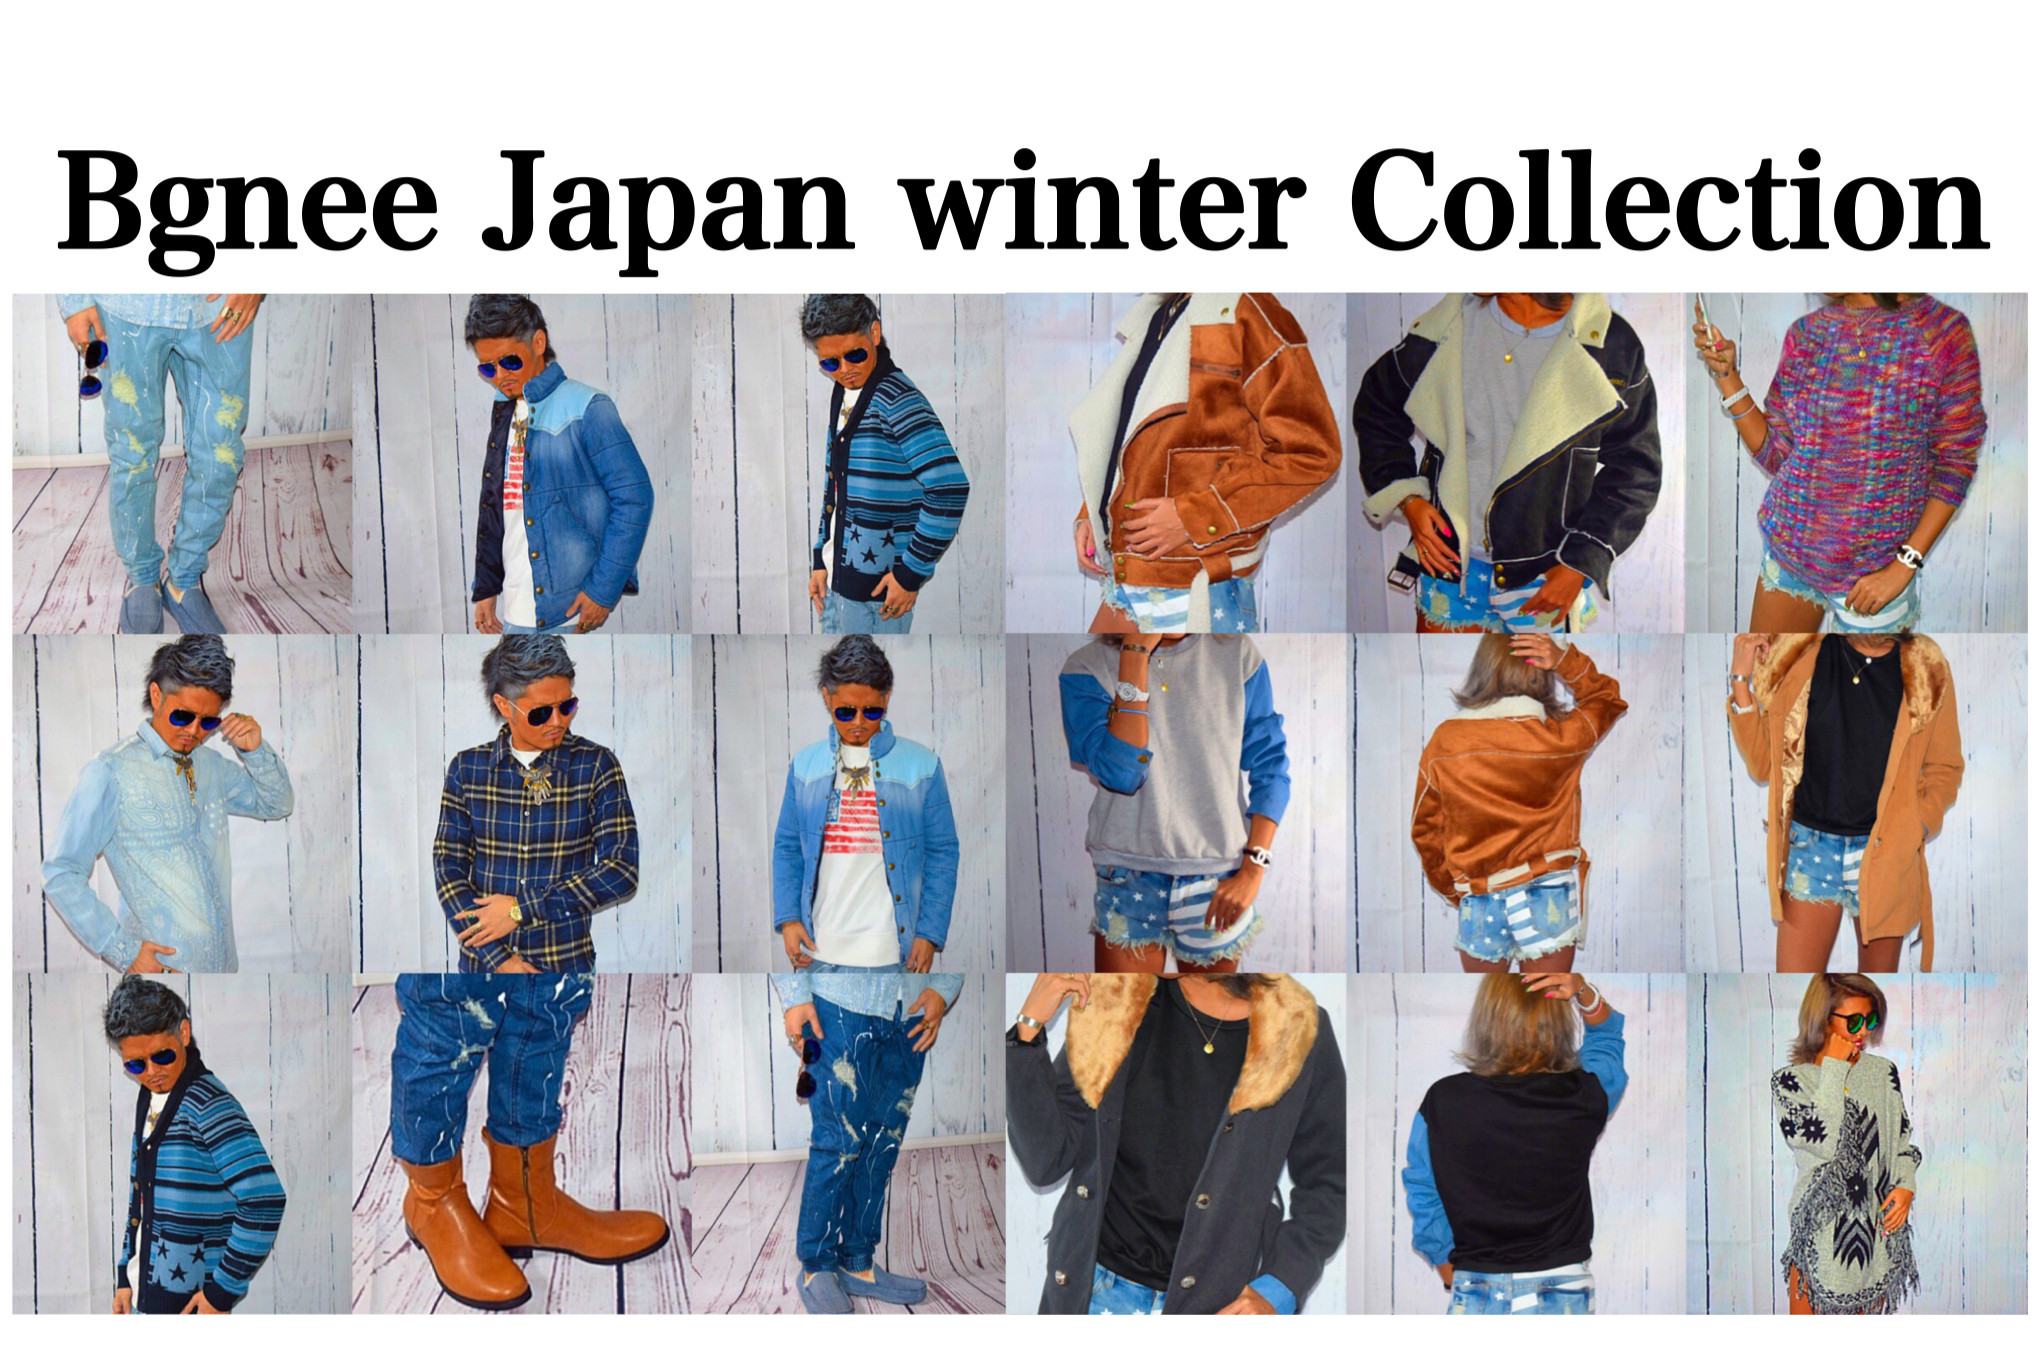 BgneeJapan新作winter Collection販売開始